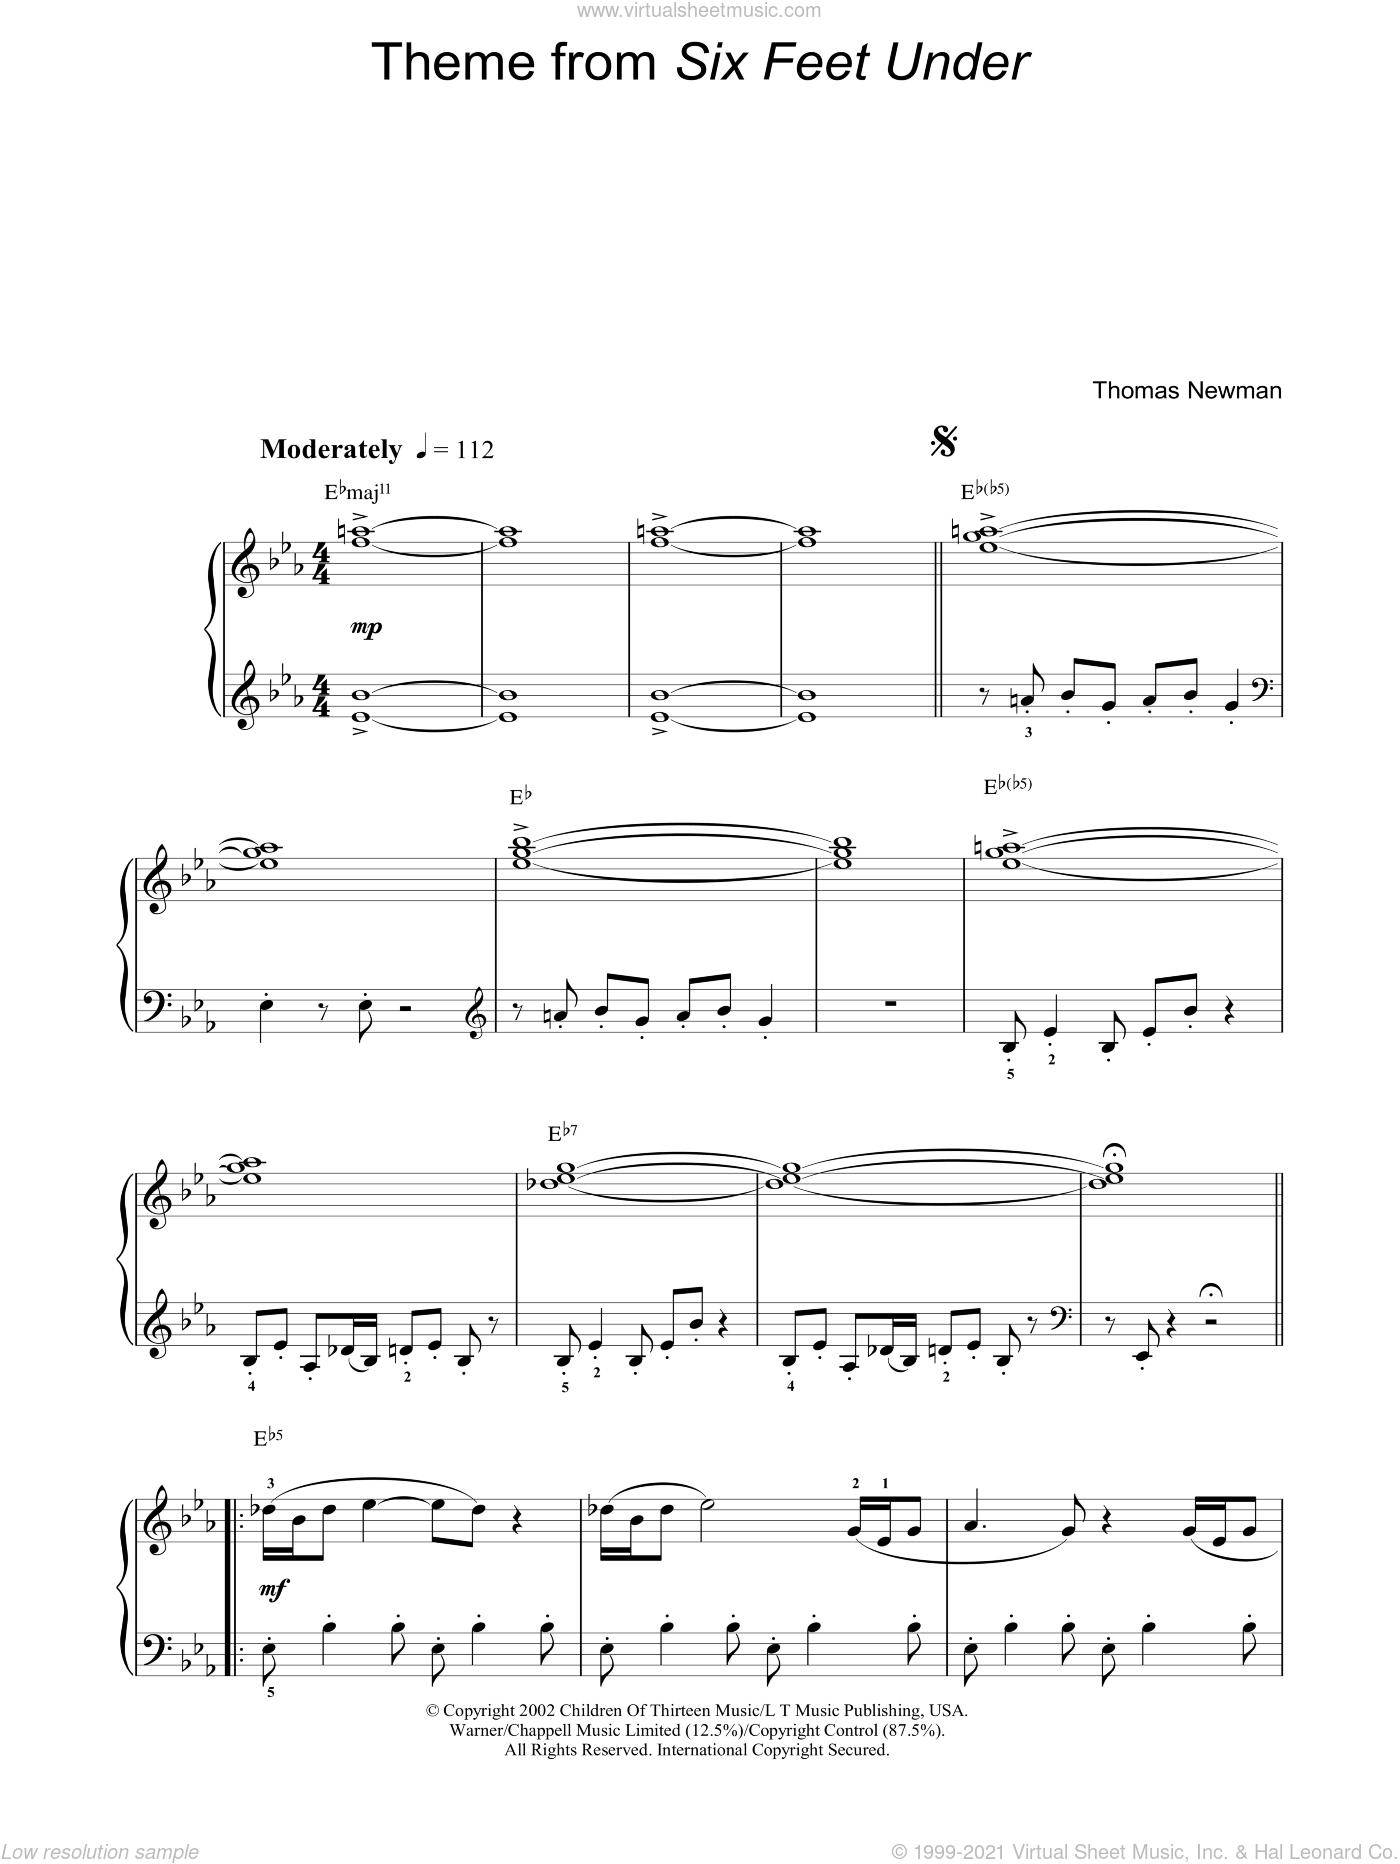 Theme from Six Feet Under sheet music for piano solo by Thomas Newman